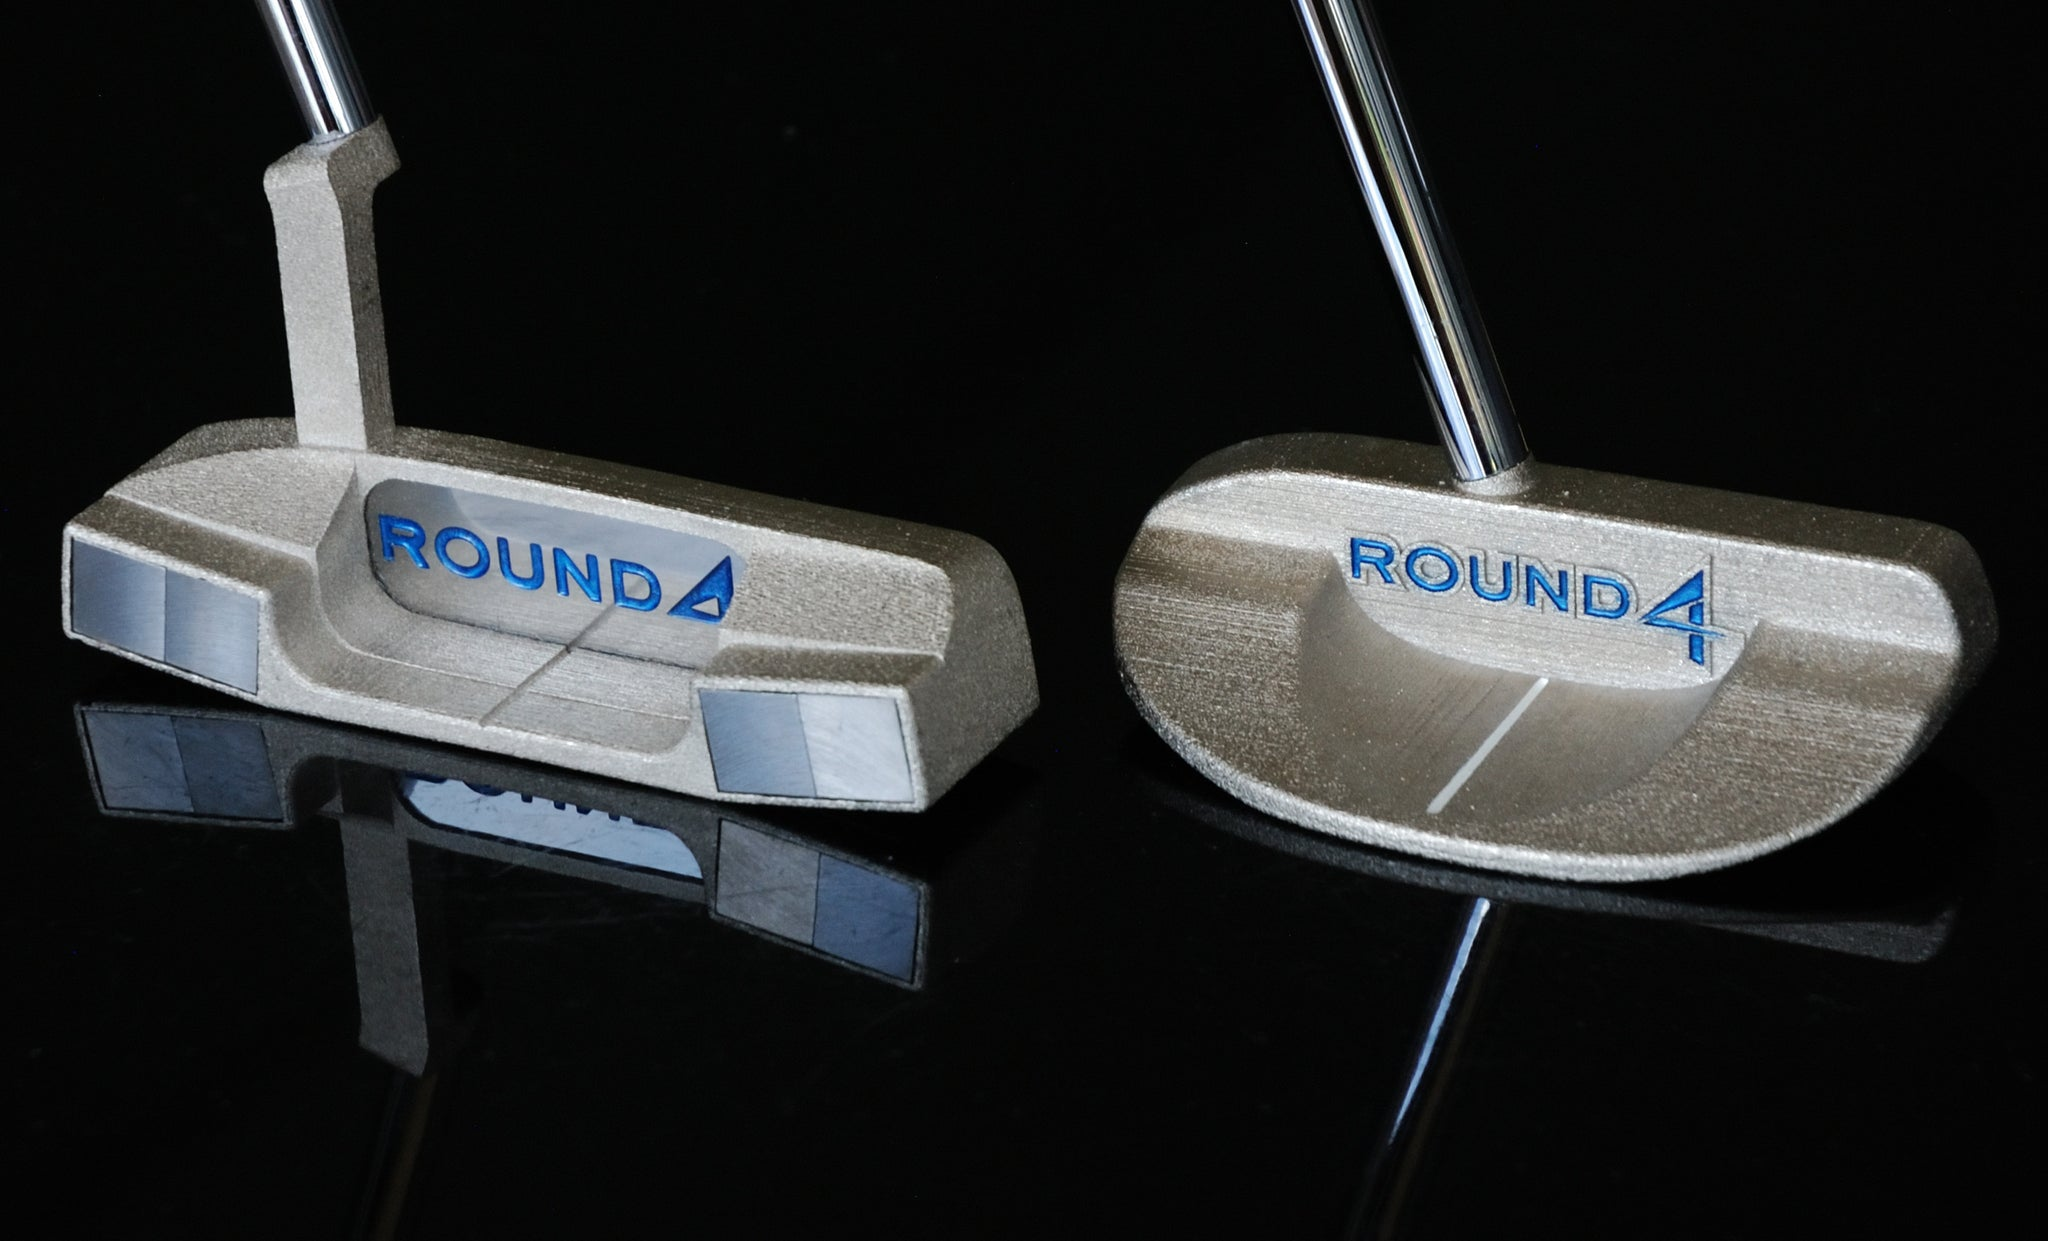 Round 4 Putters Introduces two new 3D Printed Putter Models